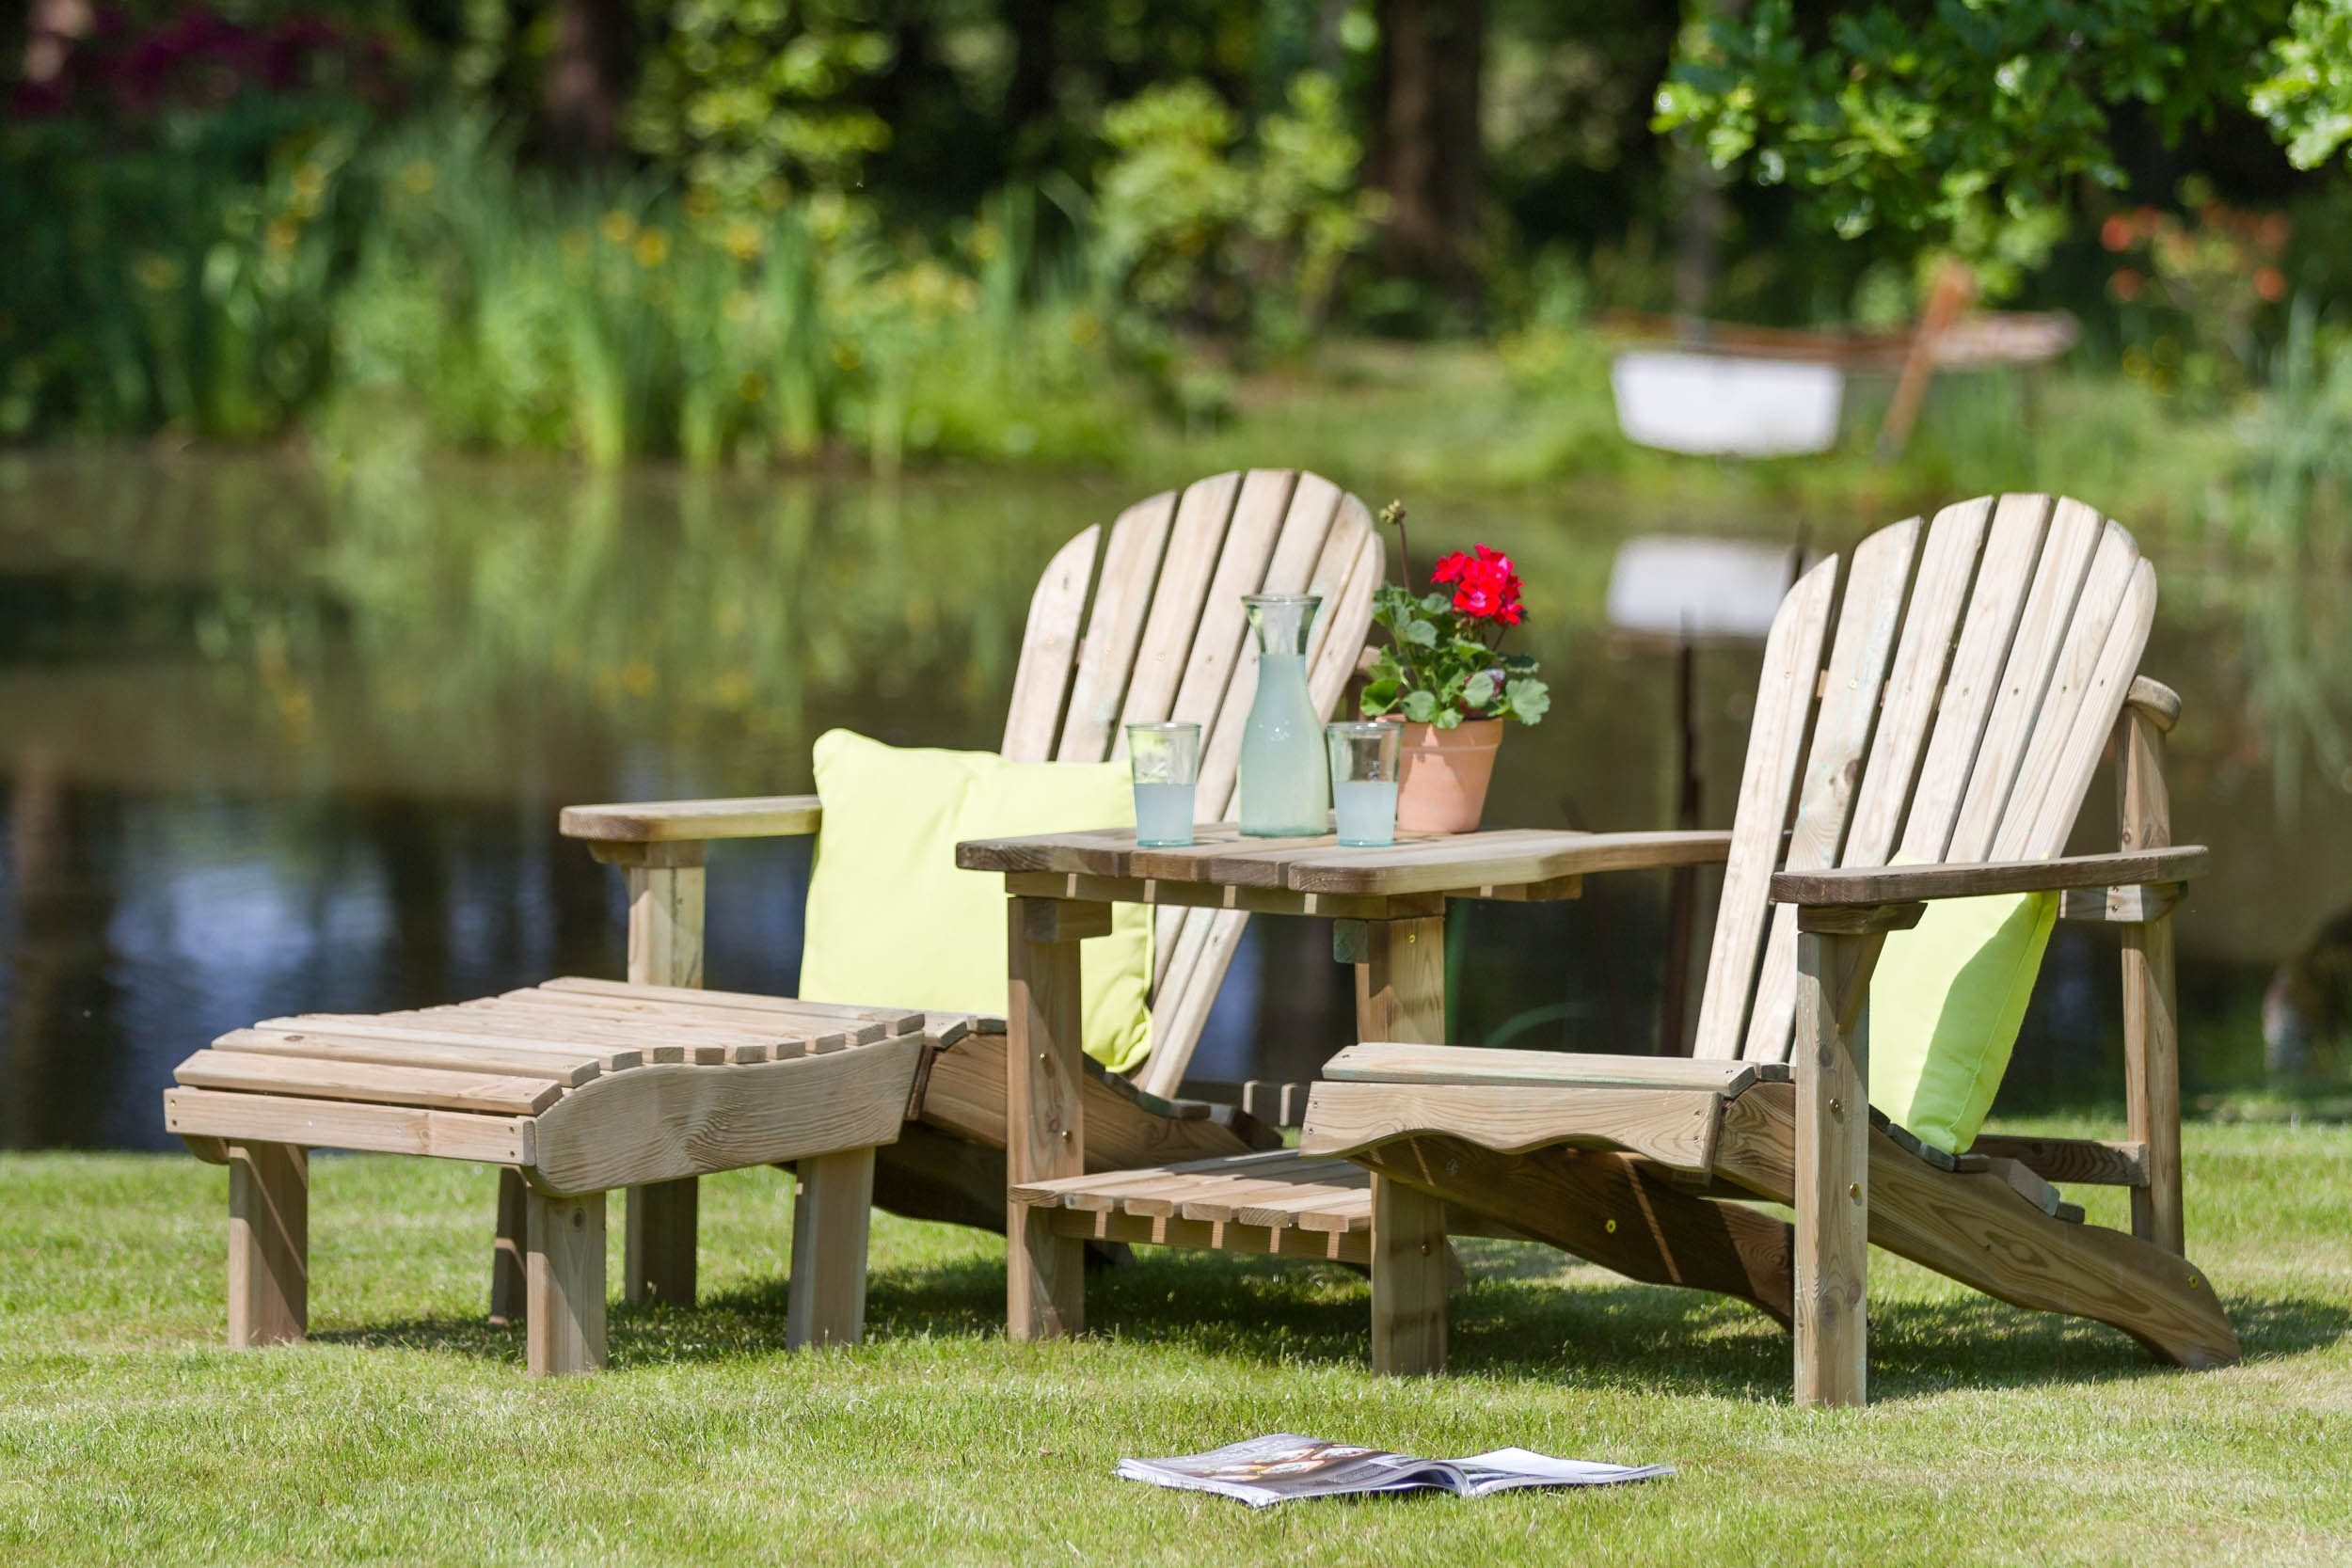 Quality pressure treated wooden garden furniture from Supreme Landscaping Products